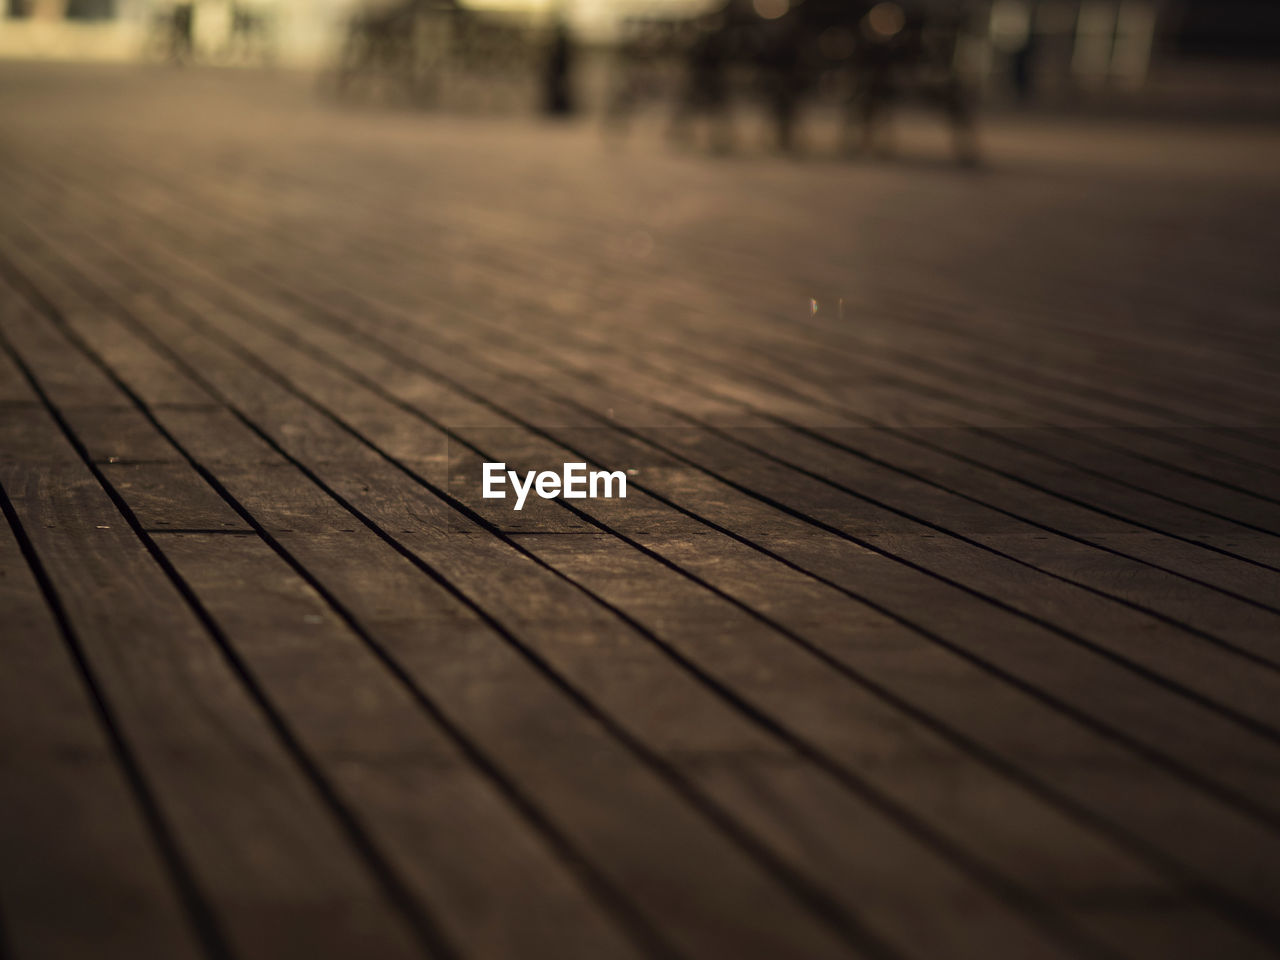 wood - material, pattern, selective focus, close-up, footpath, wood, no people, day, brown, outdoors, surface level, focus on foreground, textured, flooring, nature, floorboard, high angle view, diminishing perspective, plank, wood grain